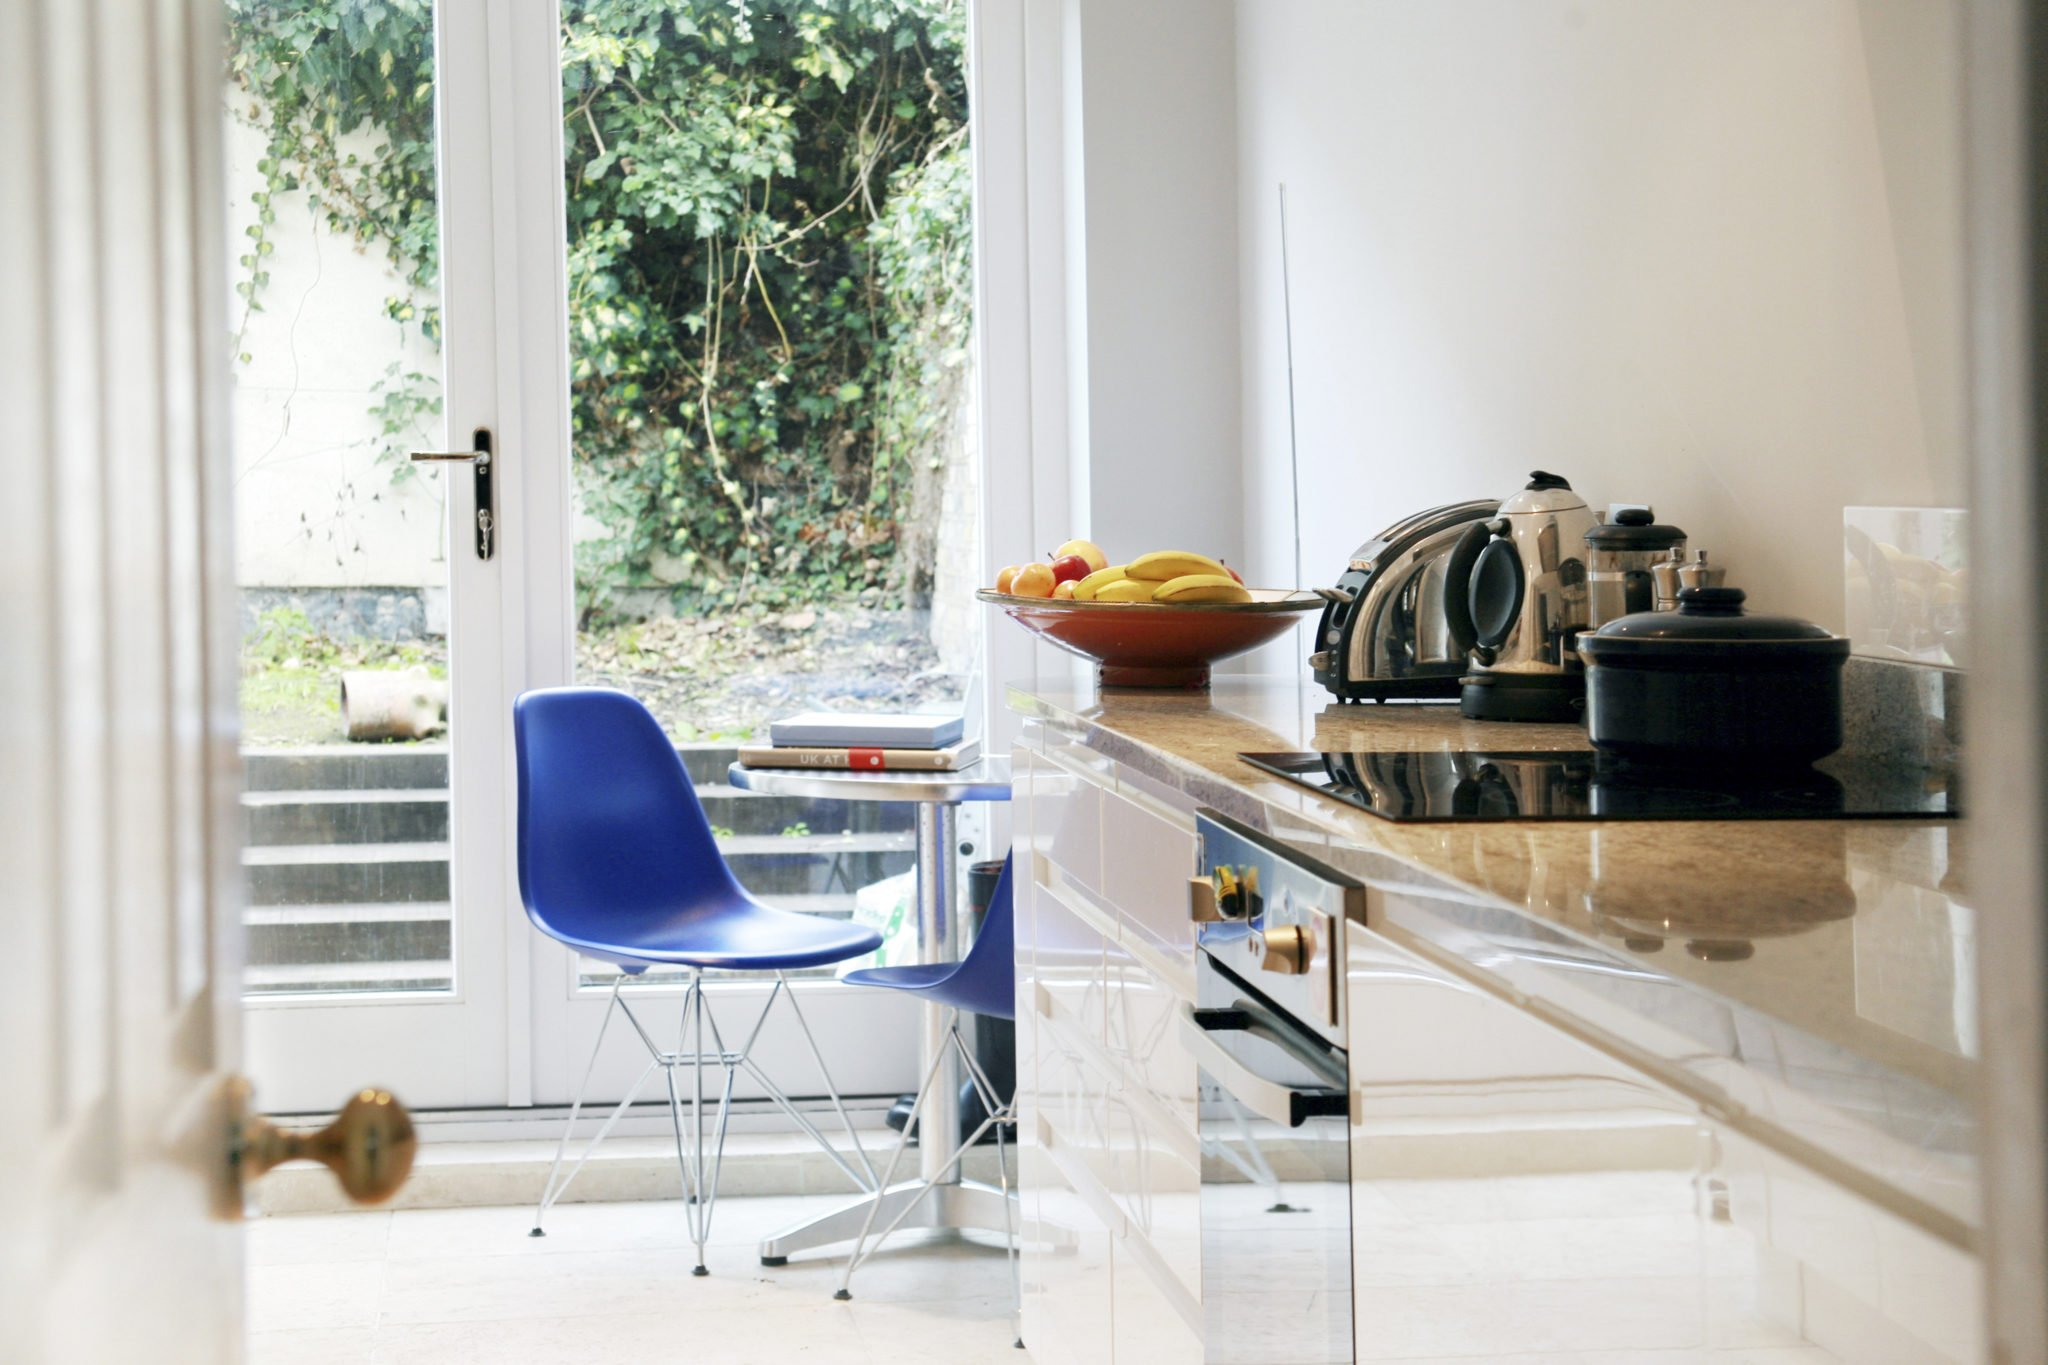 2. Angel Islington EC1 Listed house extension Kitchen rear extension internal views 1 Islington residential architect projects